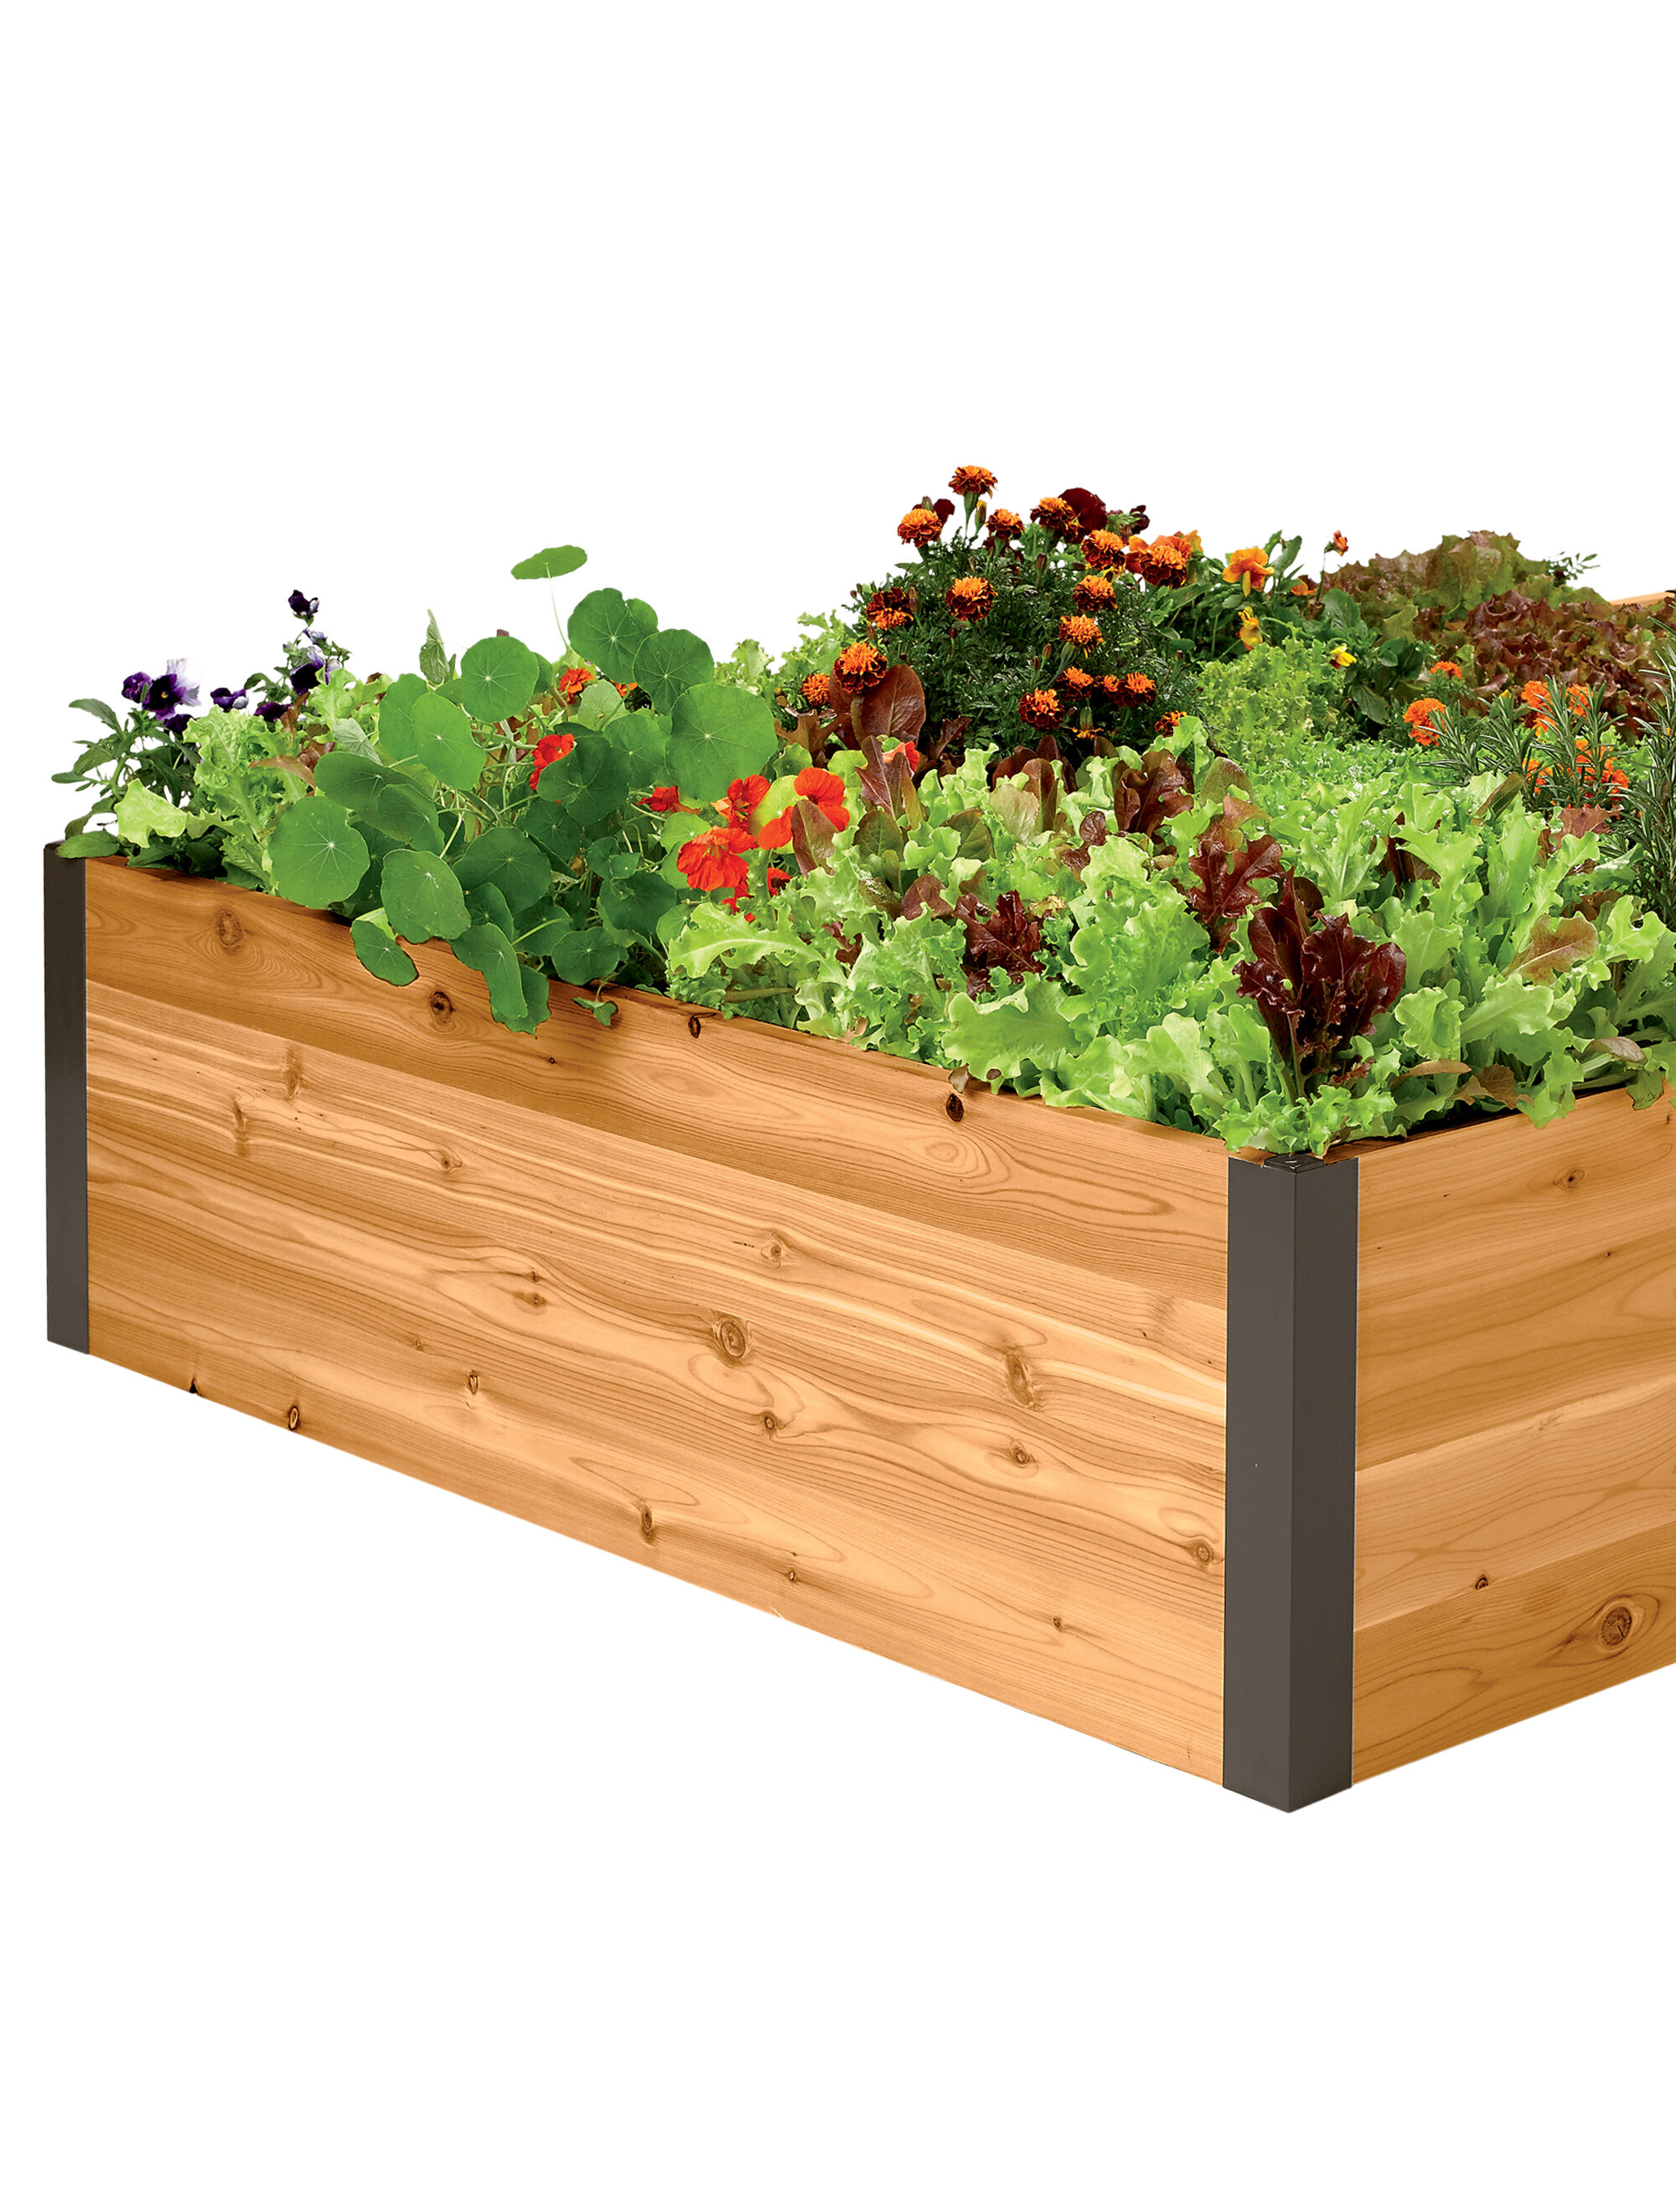 Pots Planters And Boxes For Container Gardening